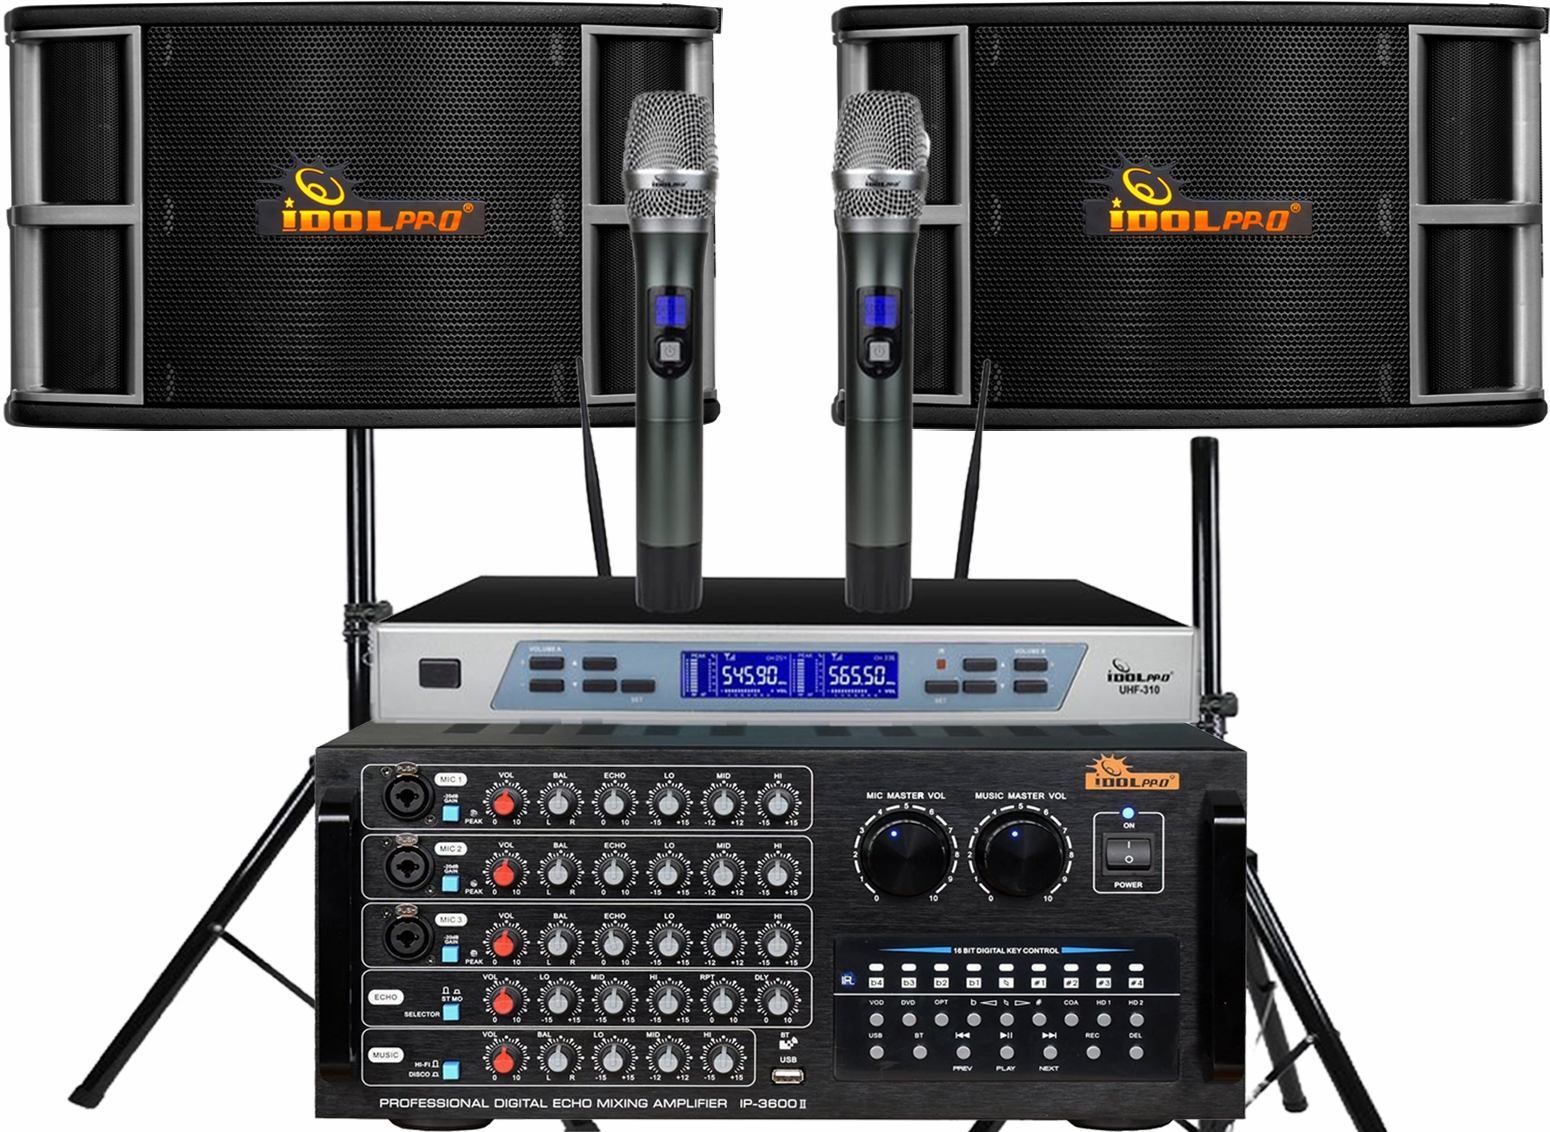 "<font color="" blue"">PACKAGE 3 </font> -- IPS-650 Speakers & IP-3600 II Mixing Amplifier & UHF-310 Microphone"